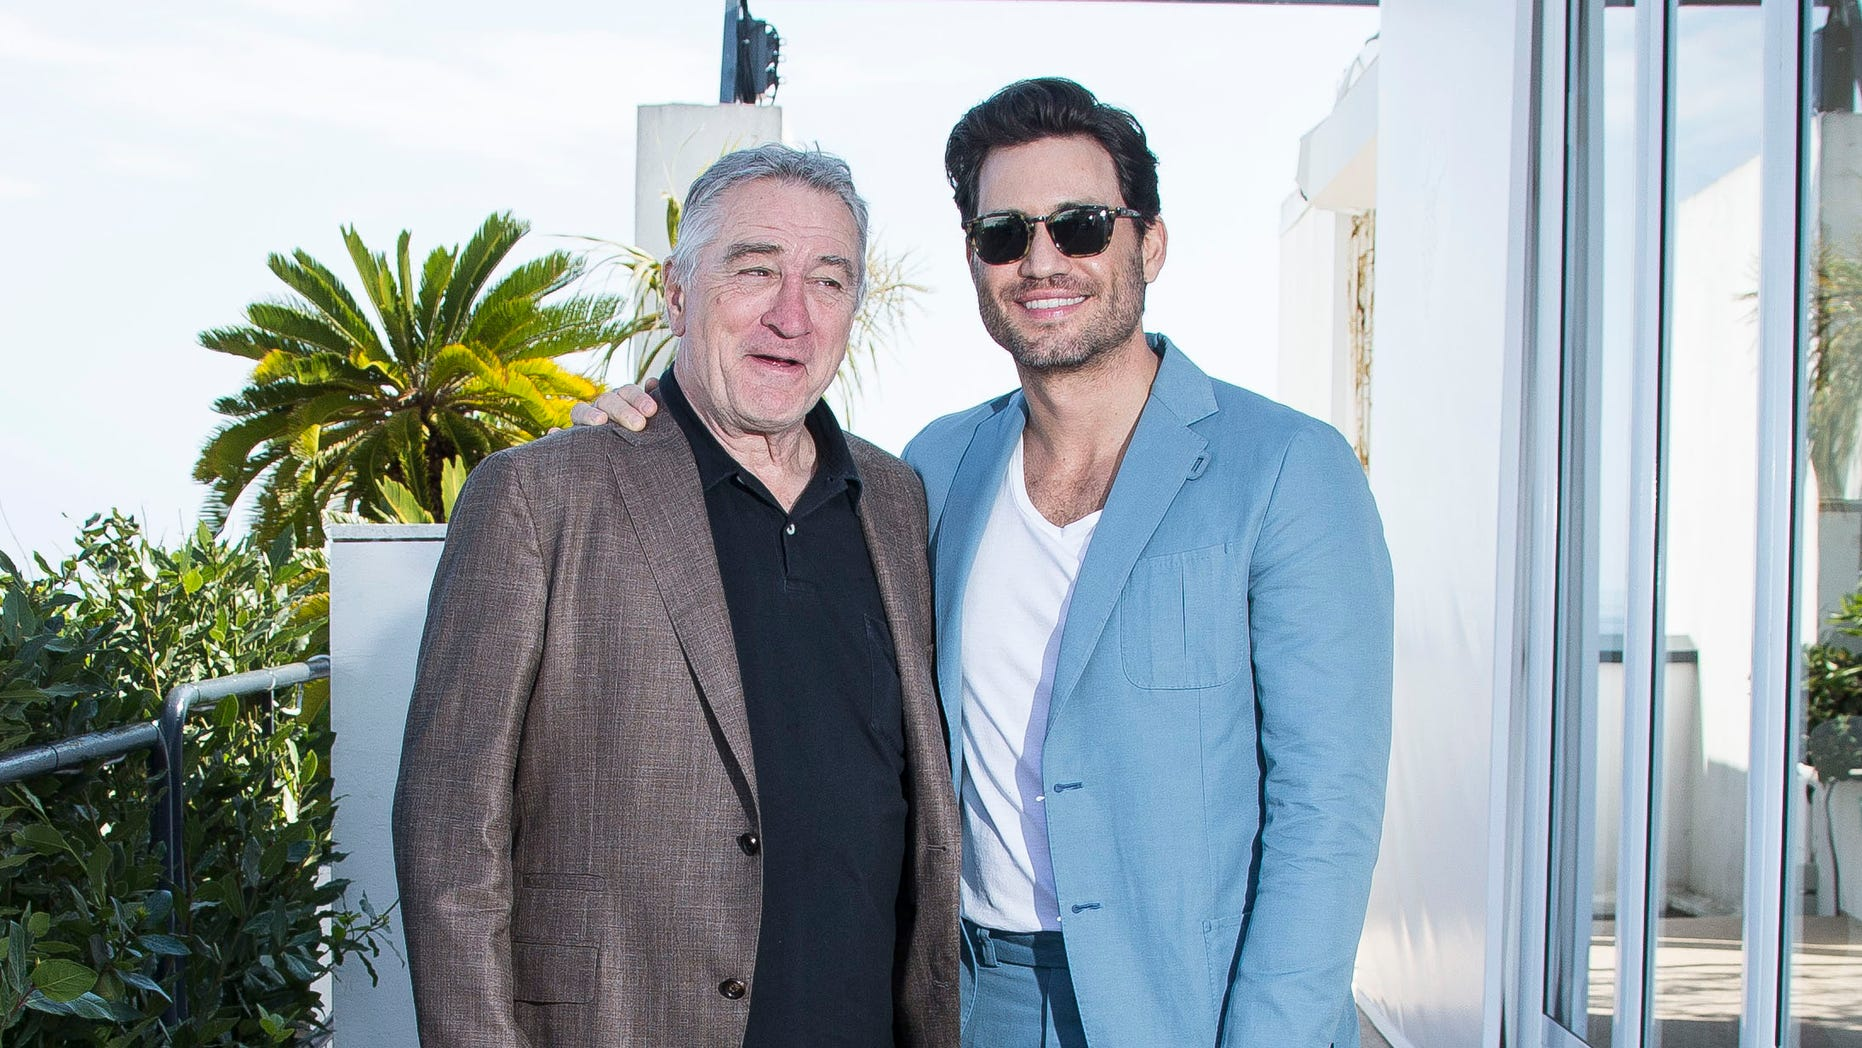 Actors Robert De Niro and Edgar Ramirez pose for portrait photographs for the film Hands of Stone at the 69th international film festival, Cannes, southern France, Tuesday, May 17, 2016. (AP Photo/Joel Ryan)